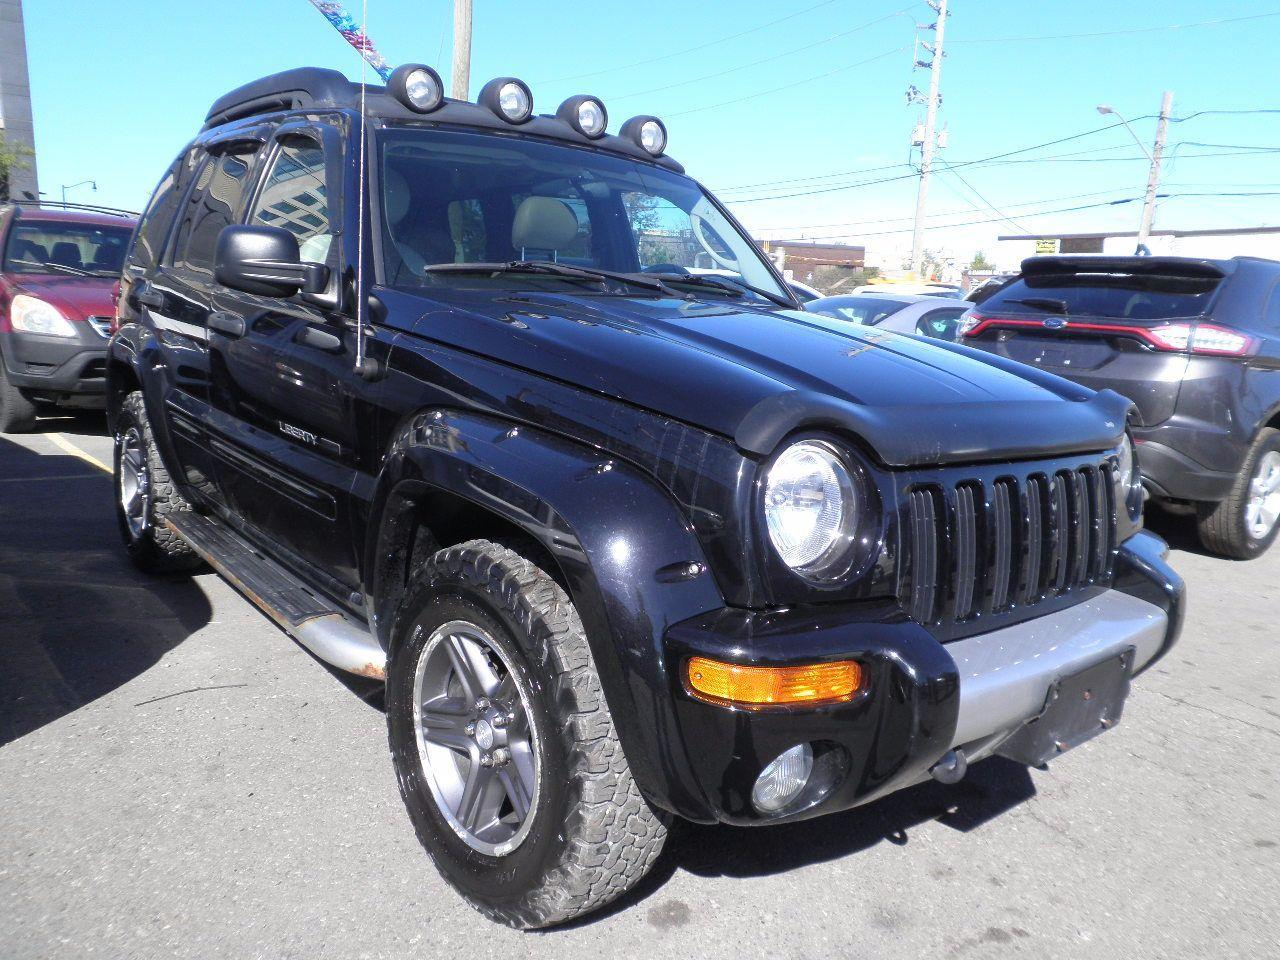 massachusetts t limited springfield in sale worcester jeep ct car available used shelby for hartford ma pittsfield hampden liberty